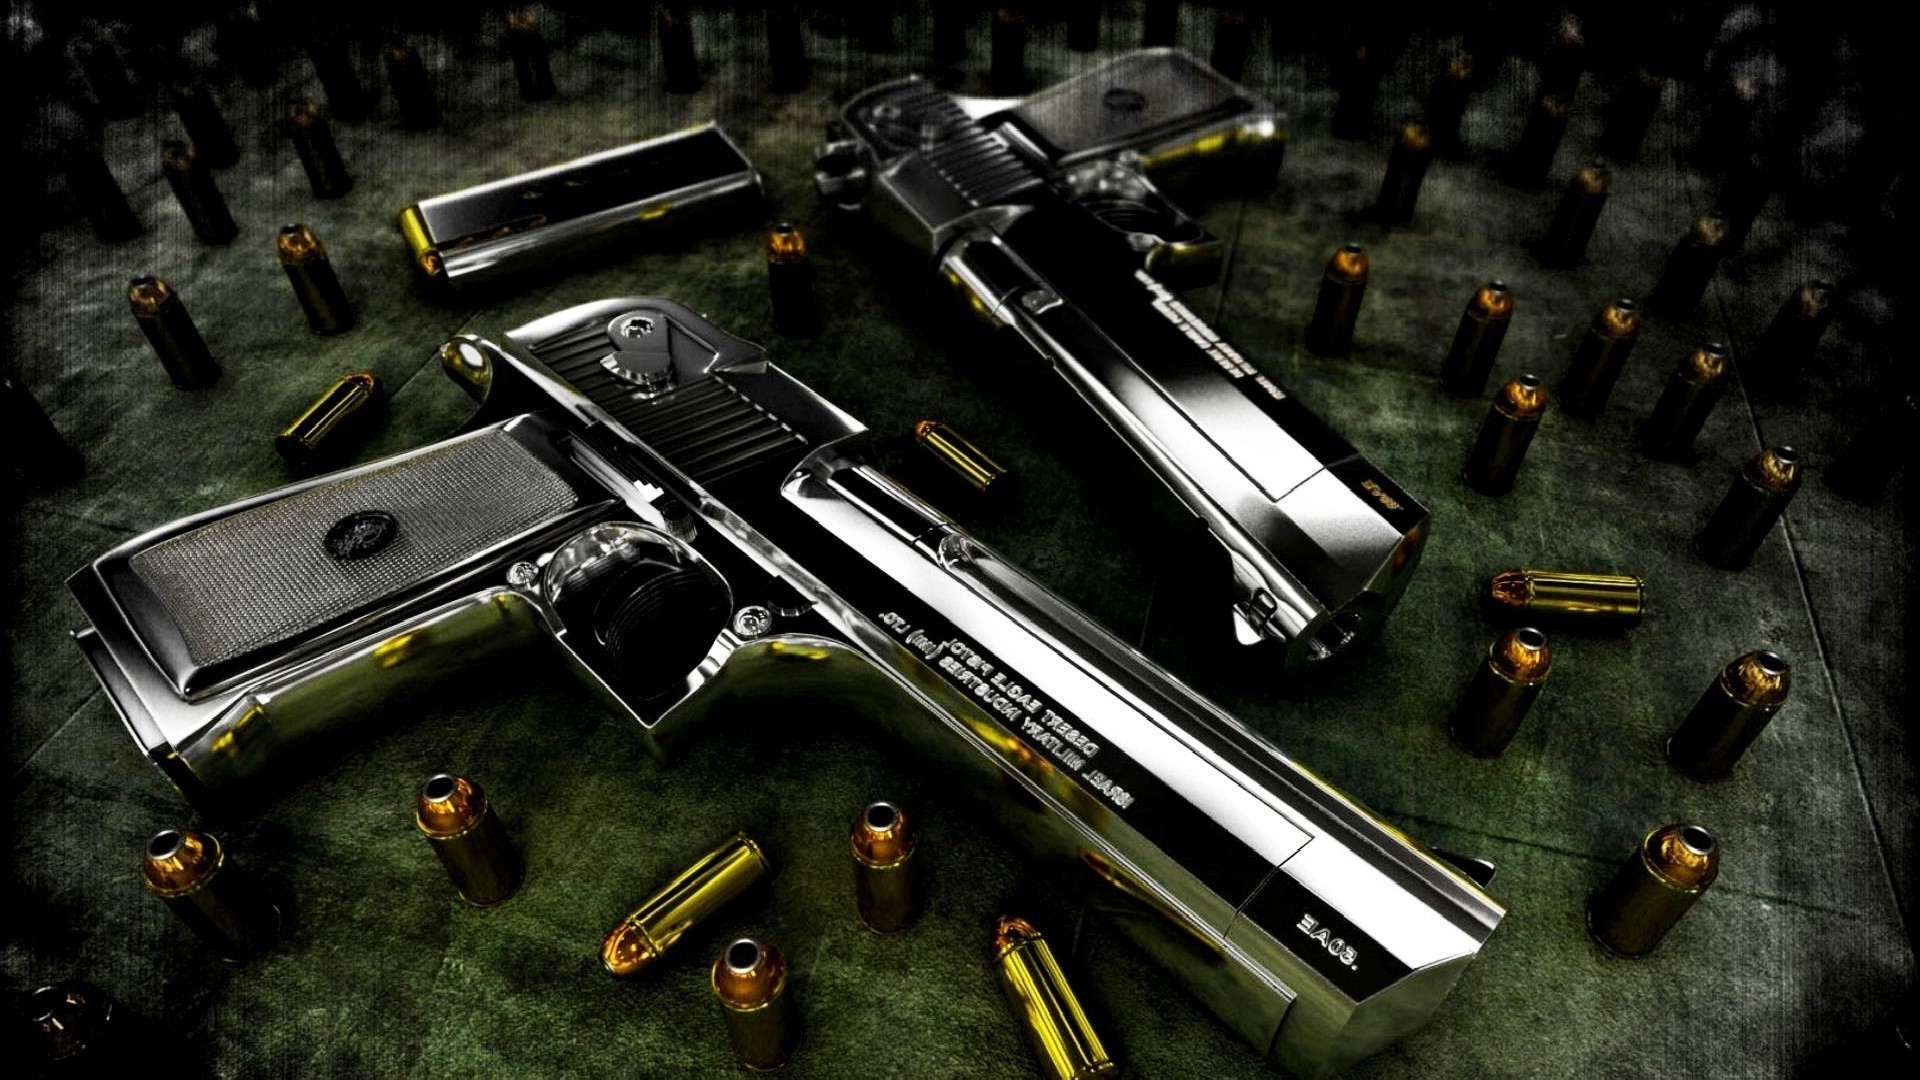 Gun Wallpaper Android Download: Guns Ammo. Android Wallpapers For Free